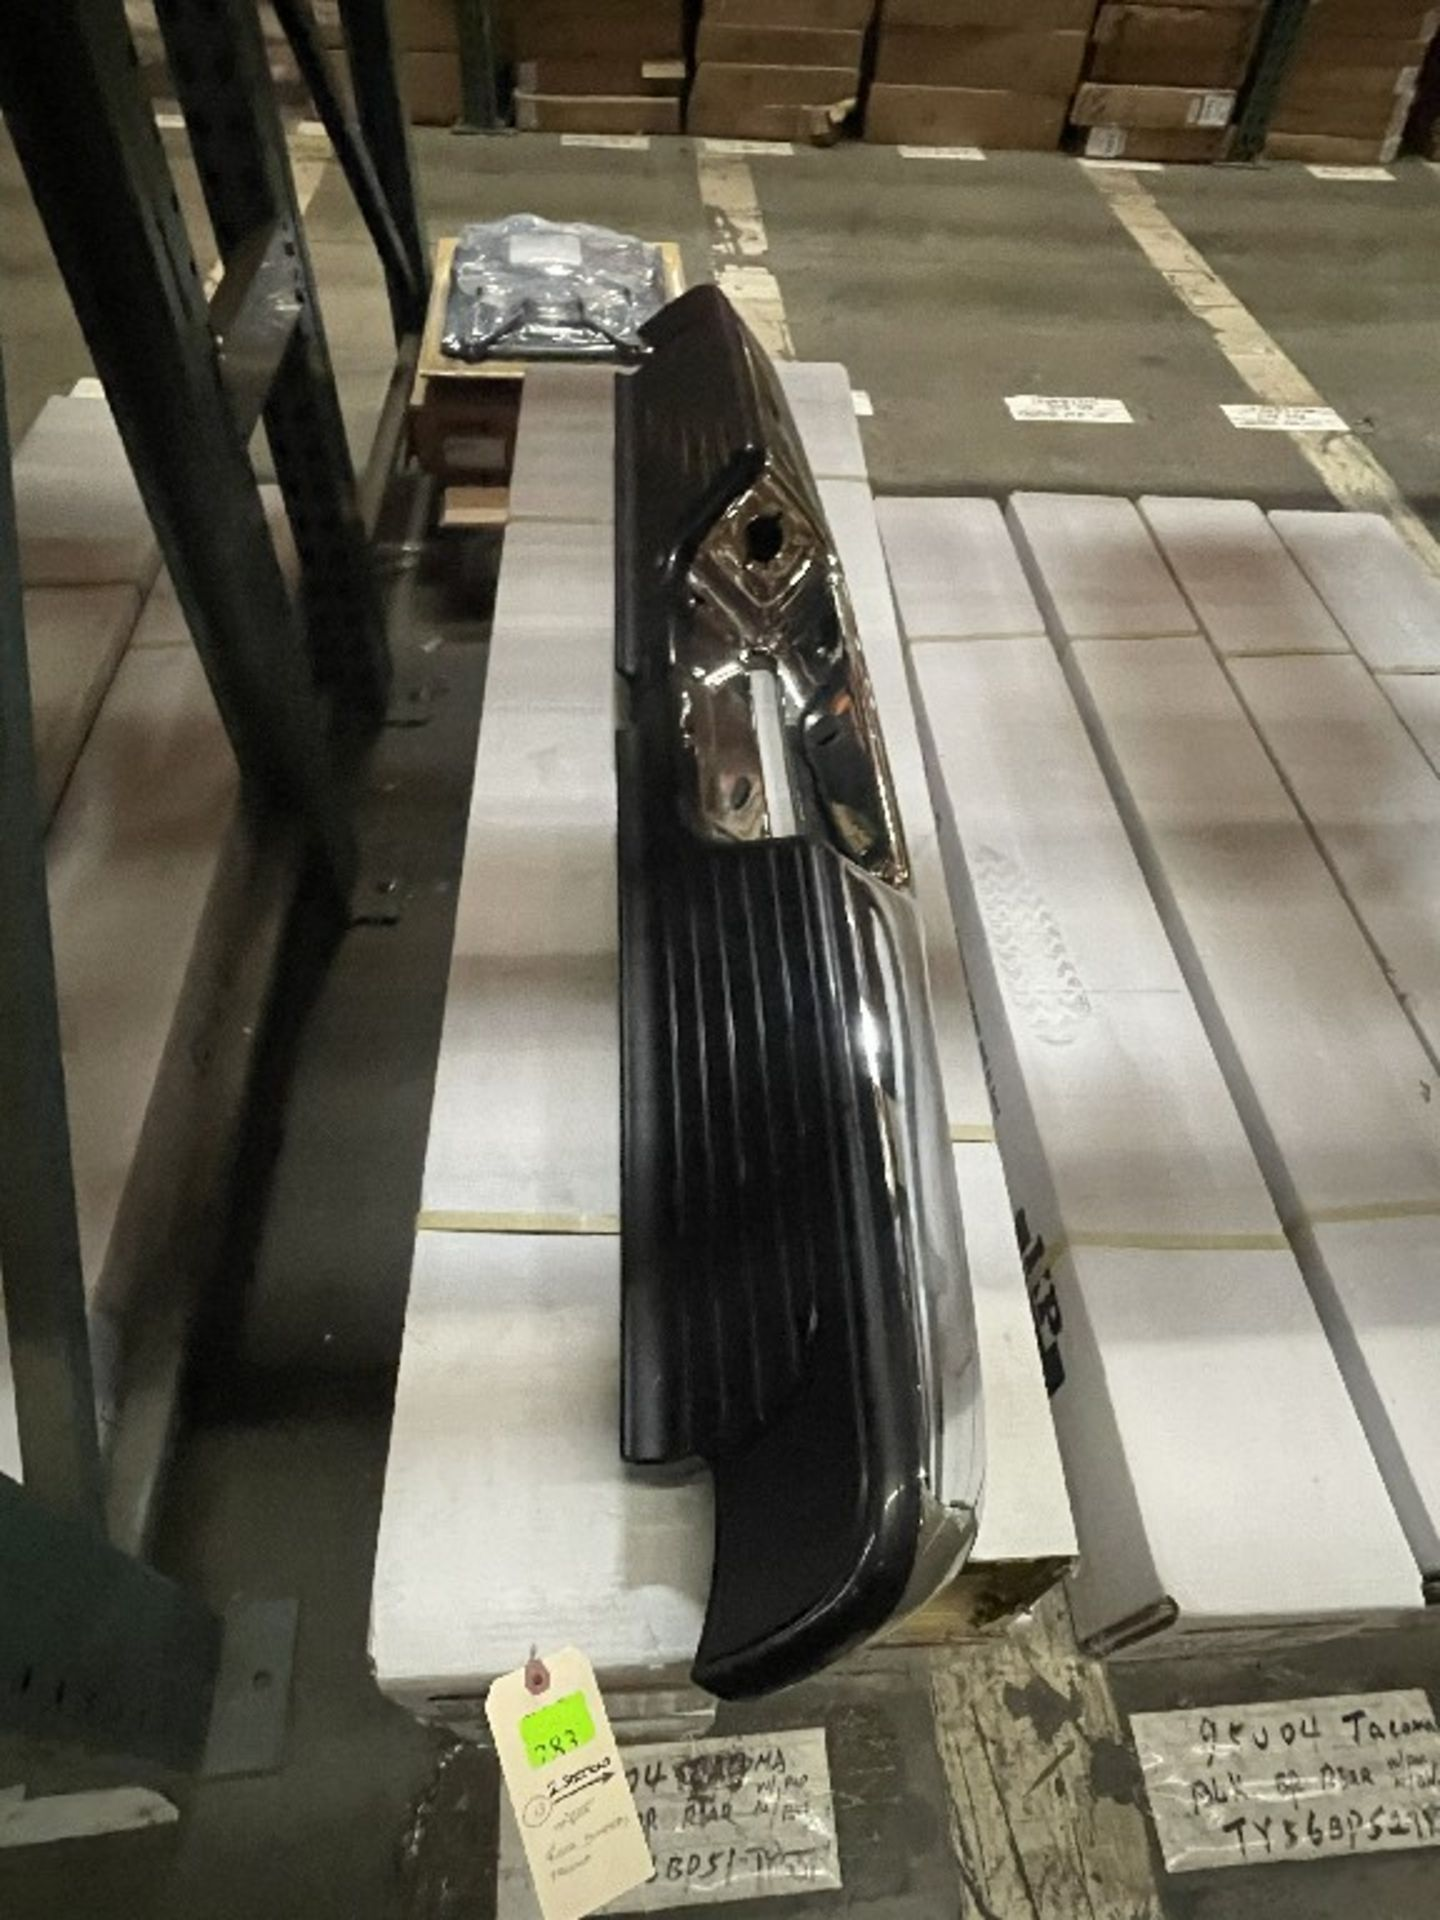 (2 SECTIONS) ASST REAR BUMPERS TACOMA - Image 2 of 3